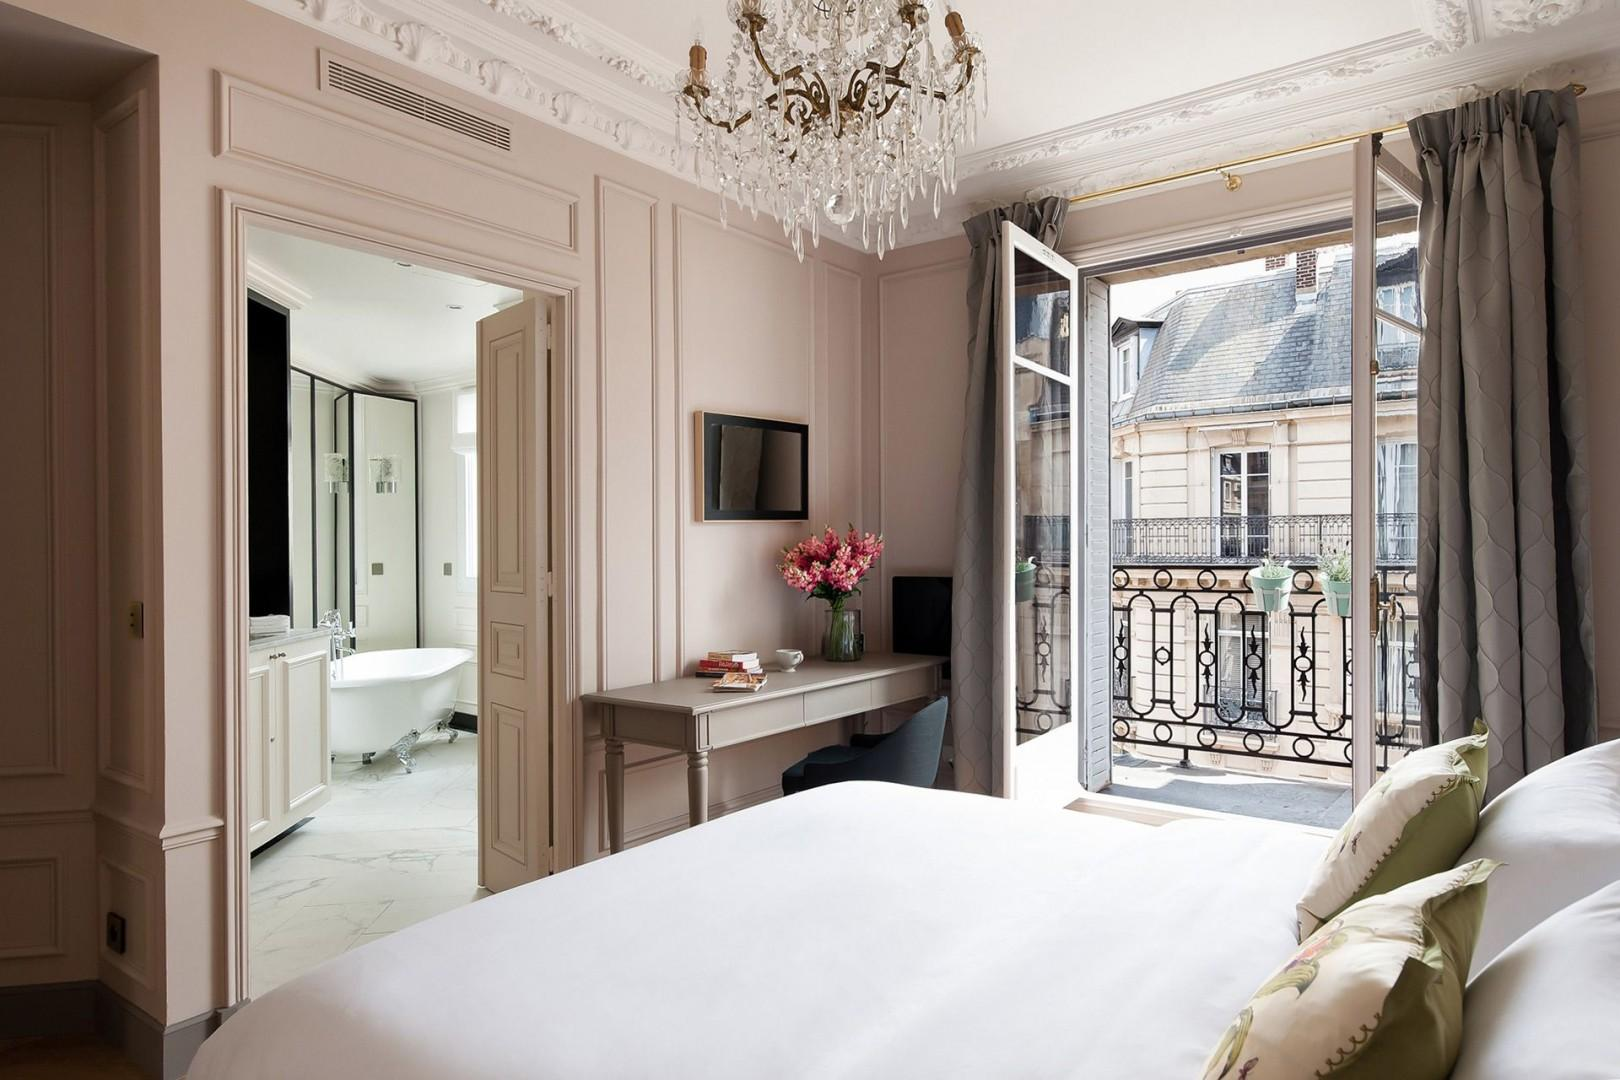 The large French window in bedroom 1 lets in lots of light.